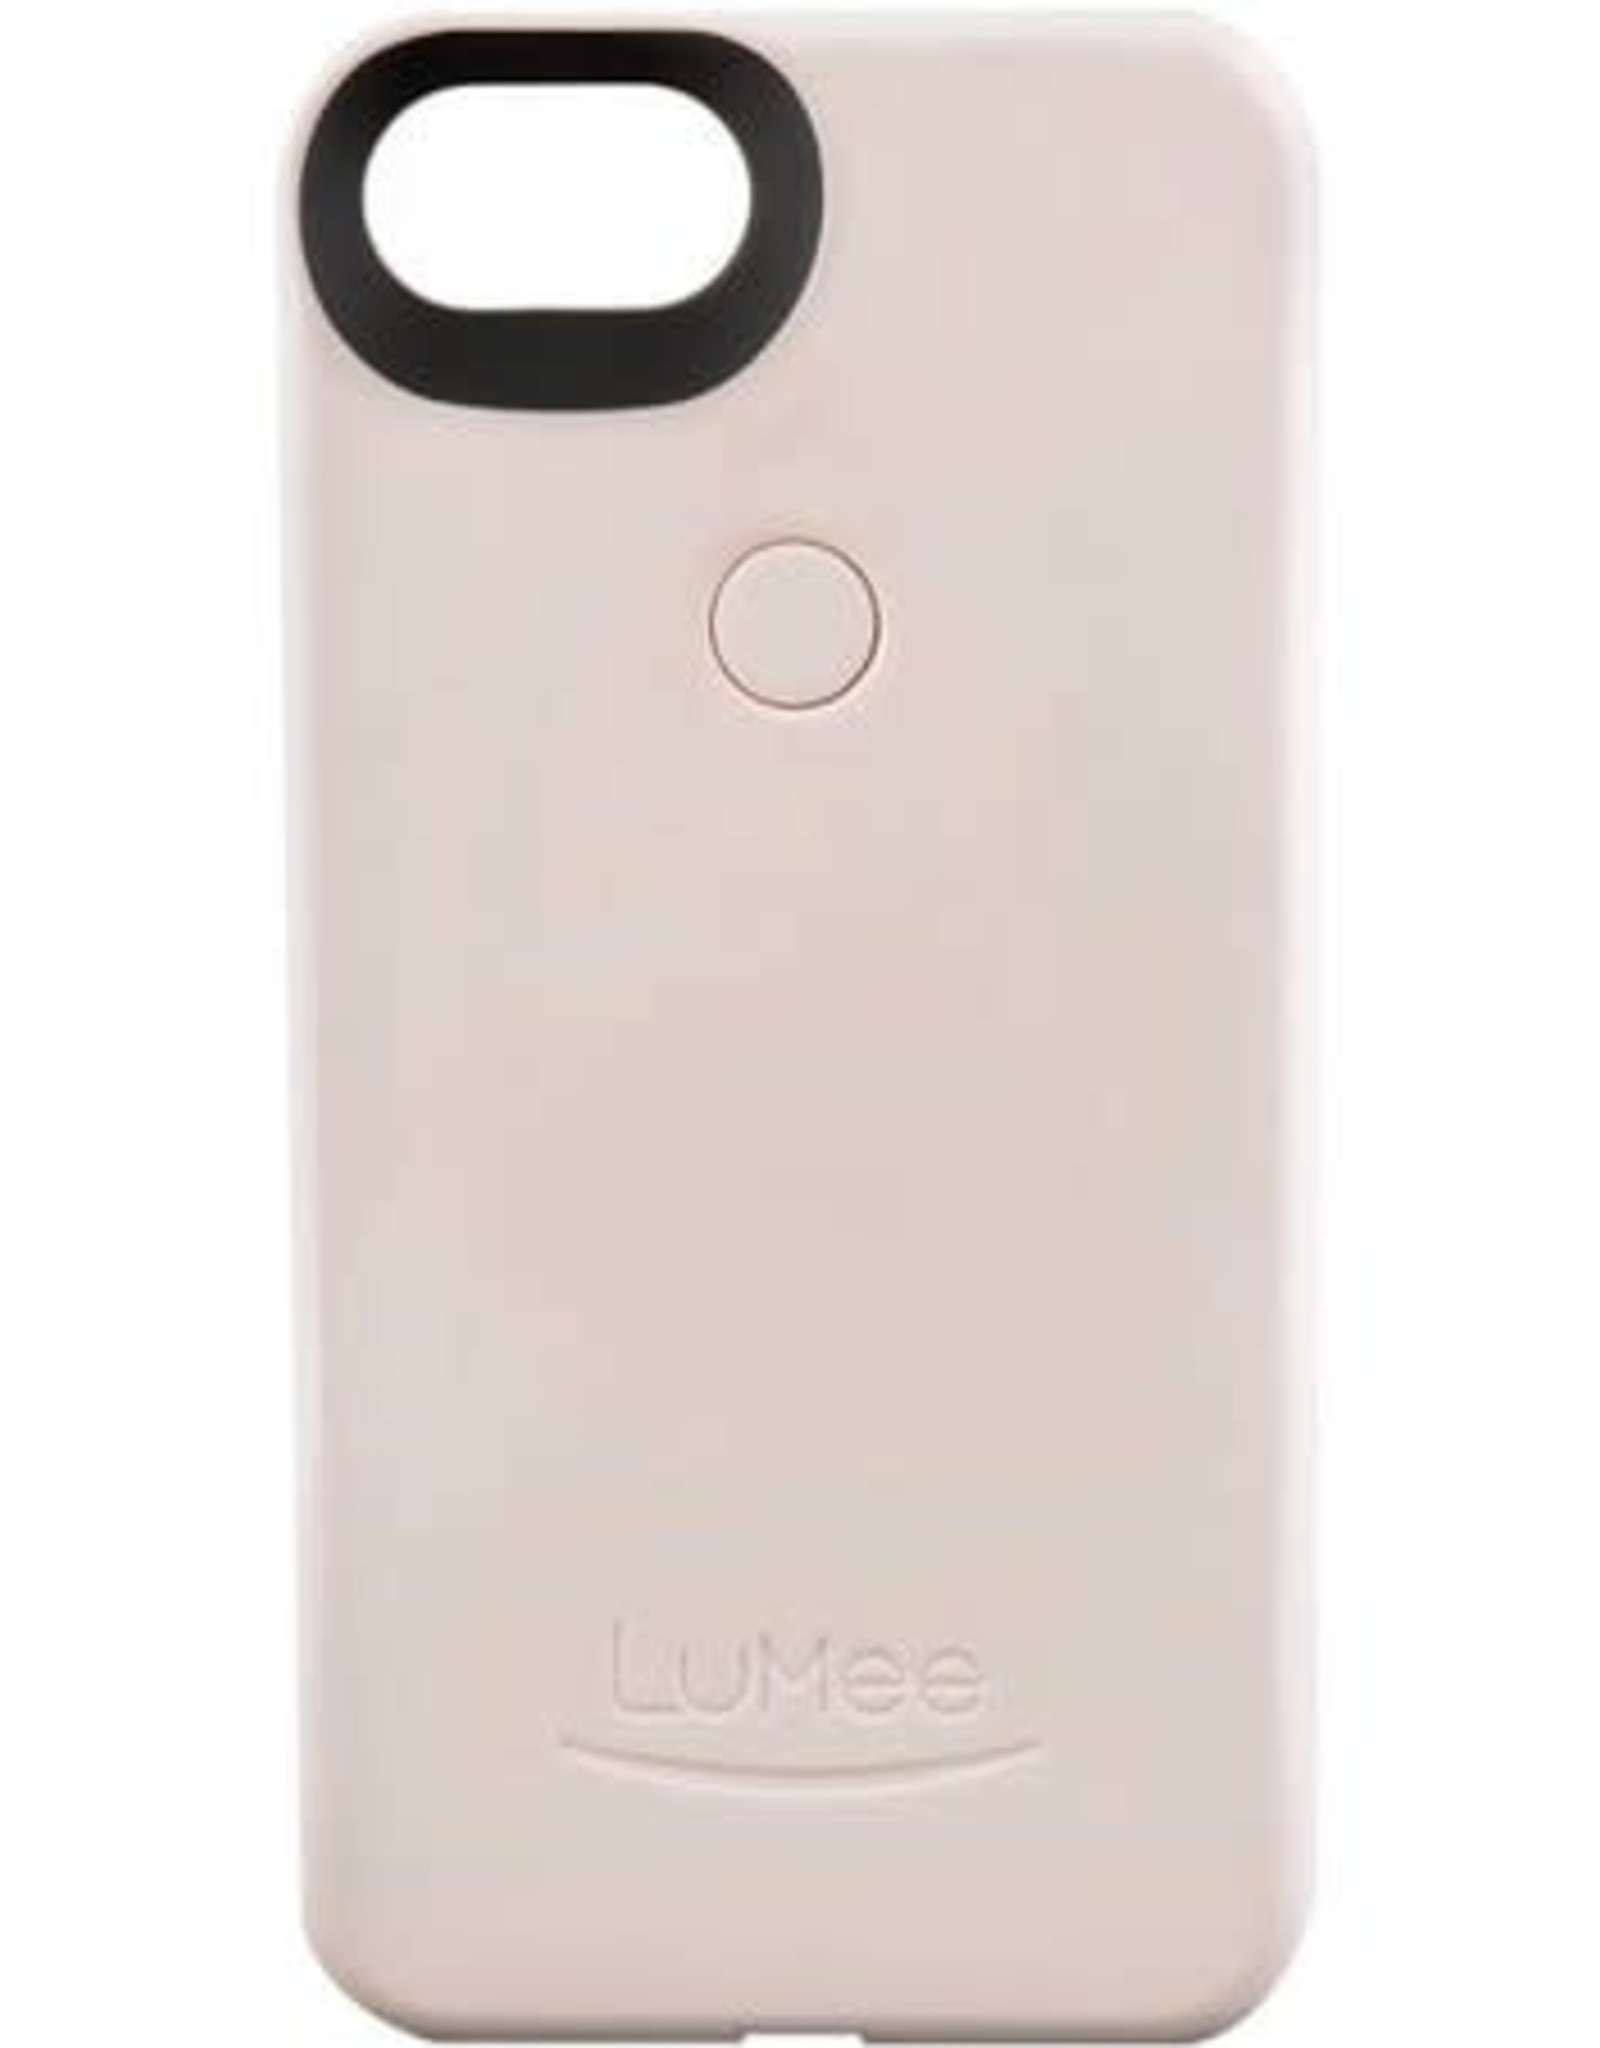 LuMee | iPhone 8/7/6/6s Two Illuminating Case Summer Blush | LM-L2-IP7-SMRBLSH